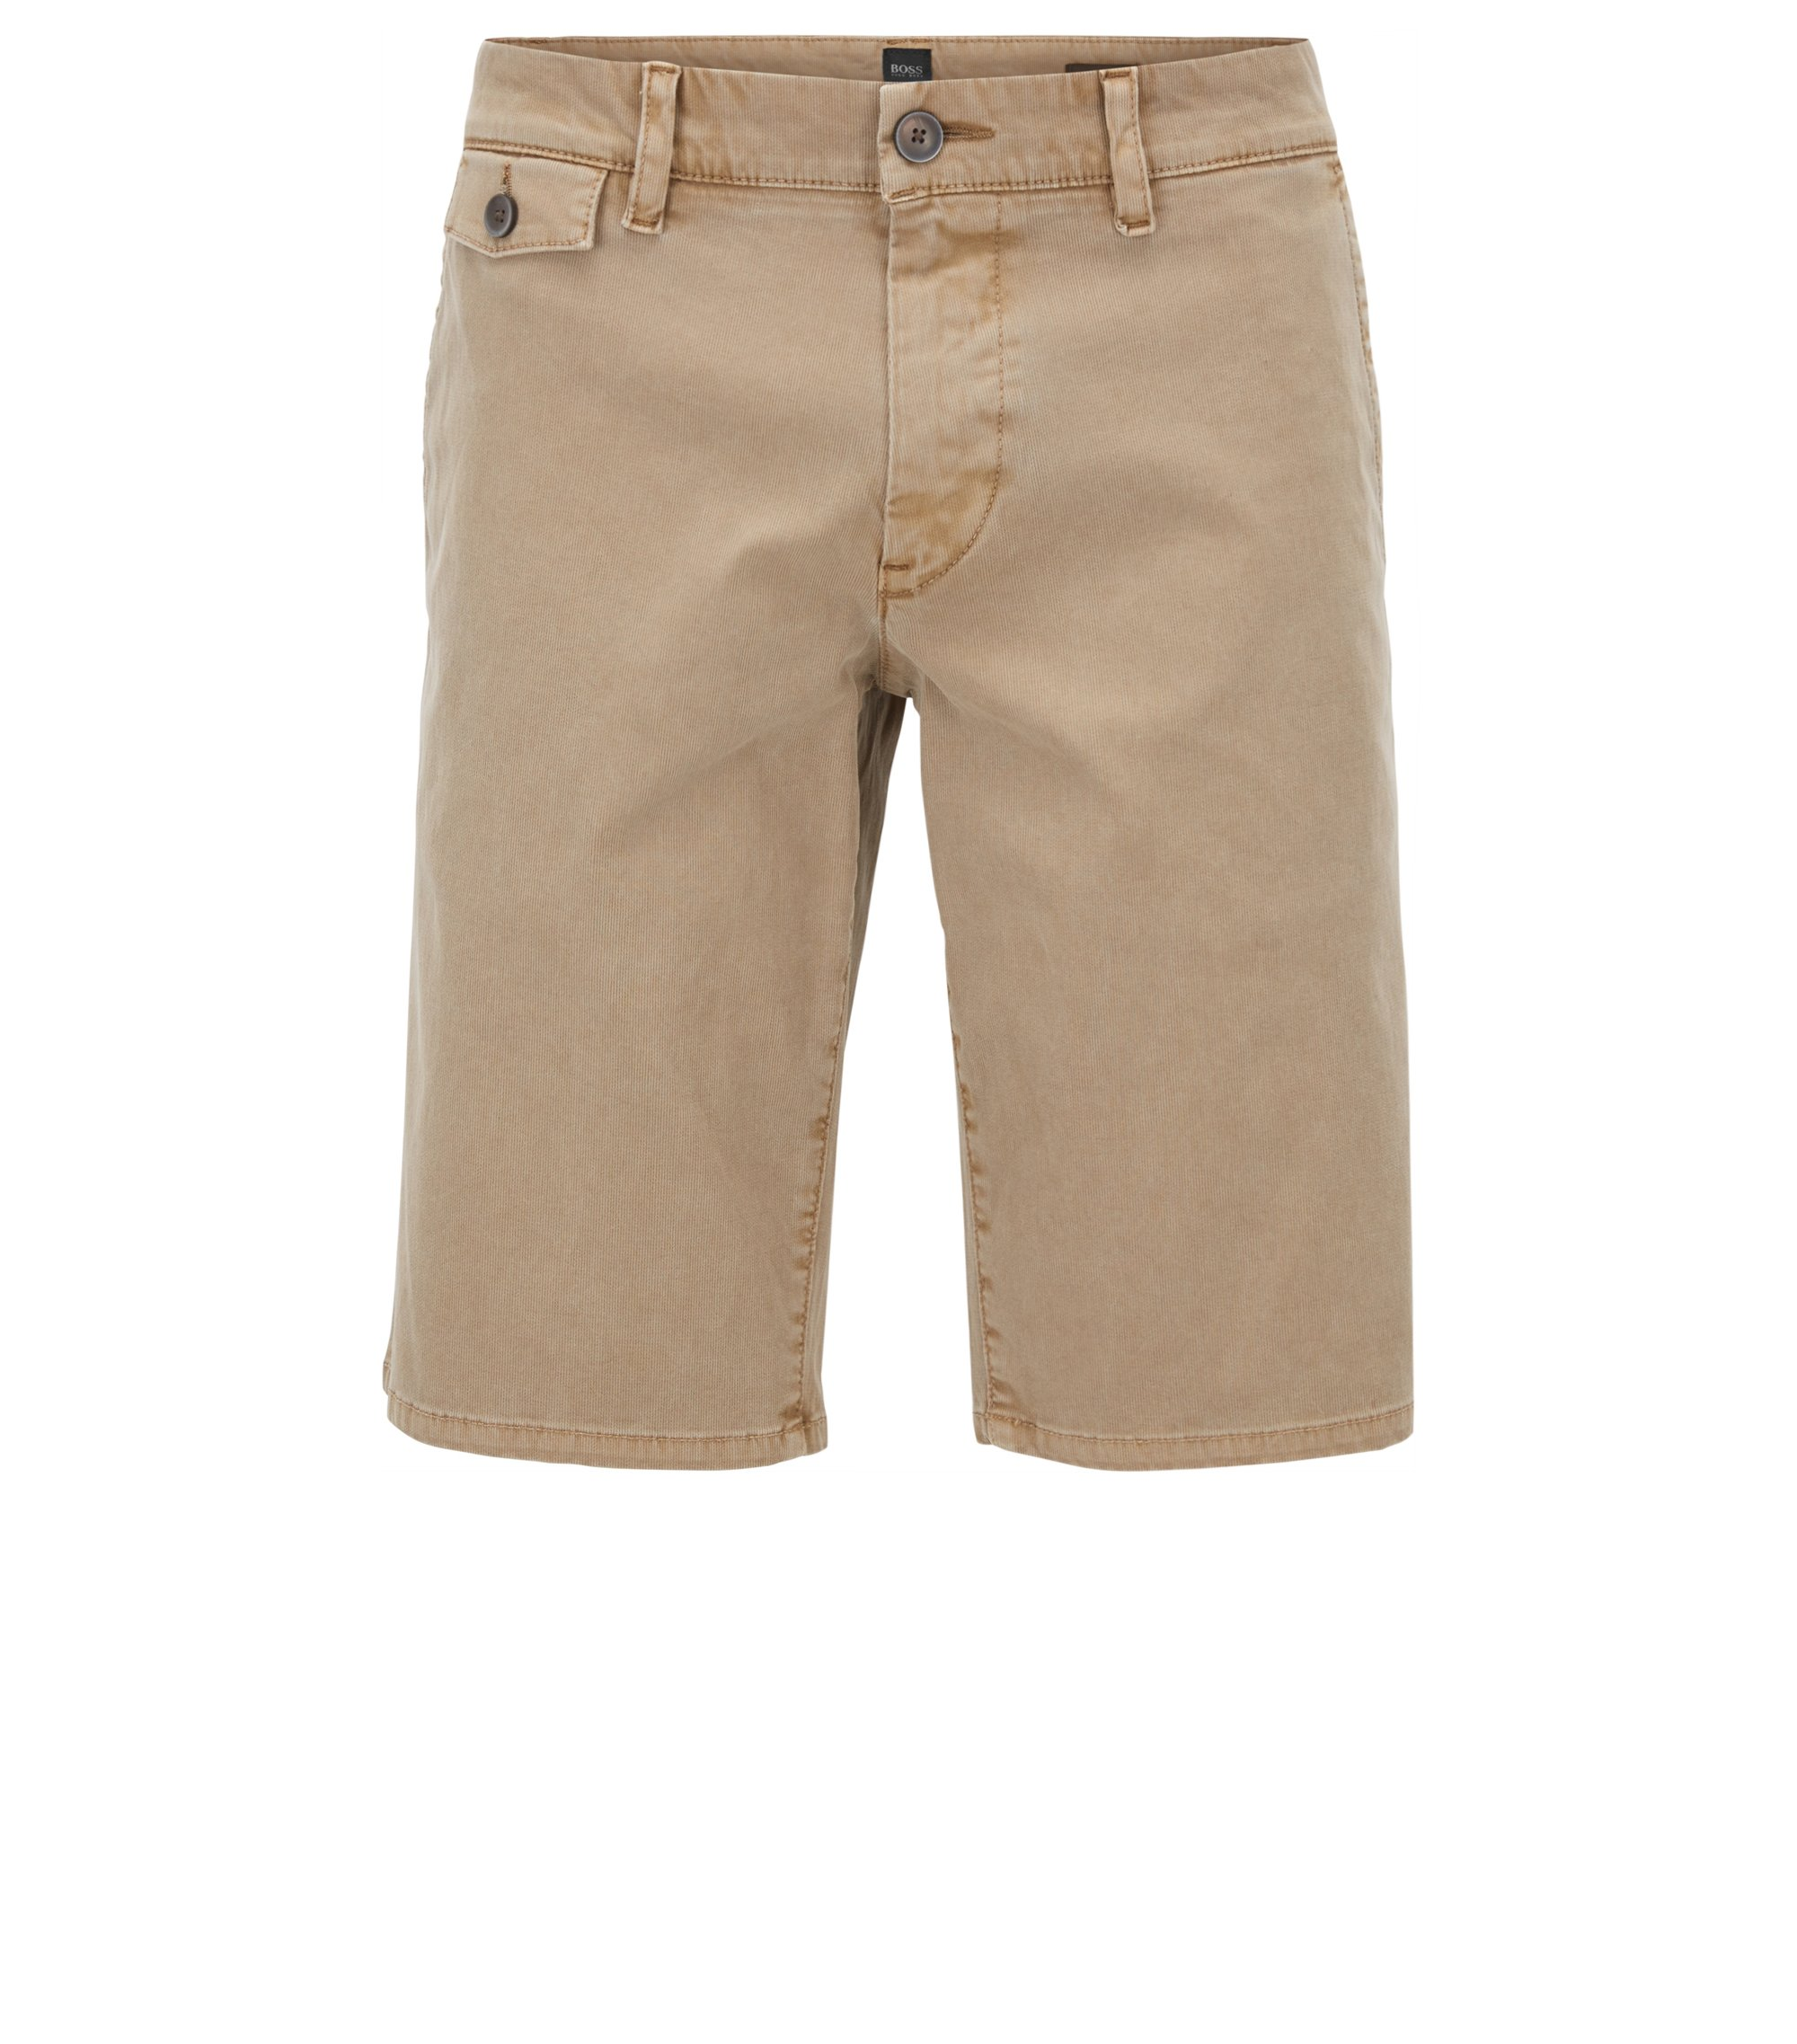 Short Regular Fit en velours côtelé Bedford de coton, Beige